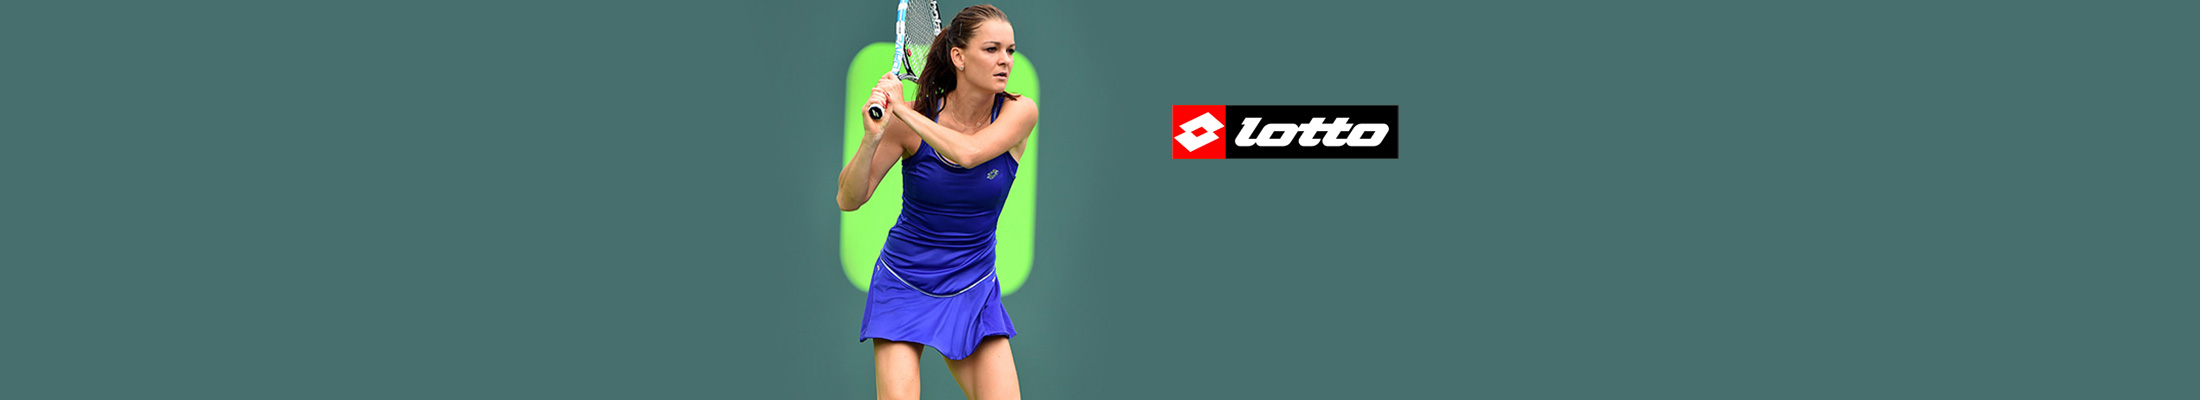 Women's Tennis apparel Lotto